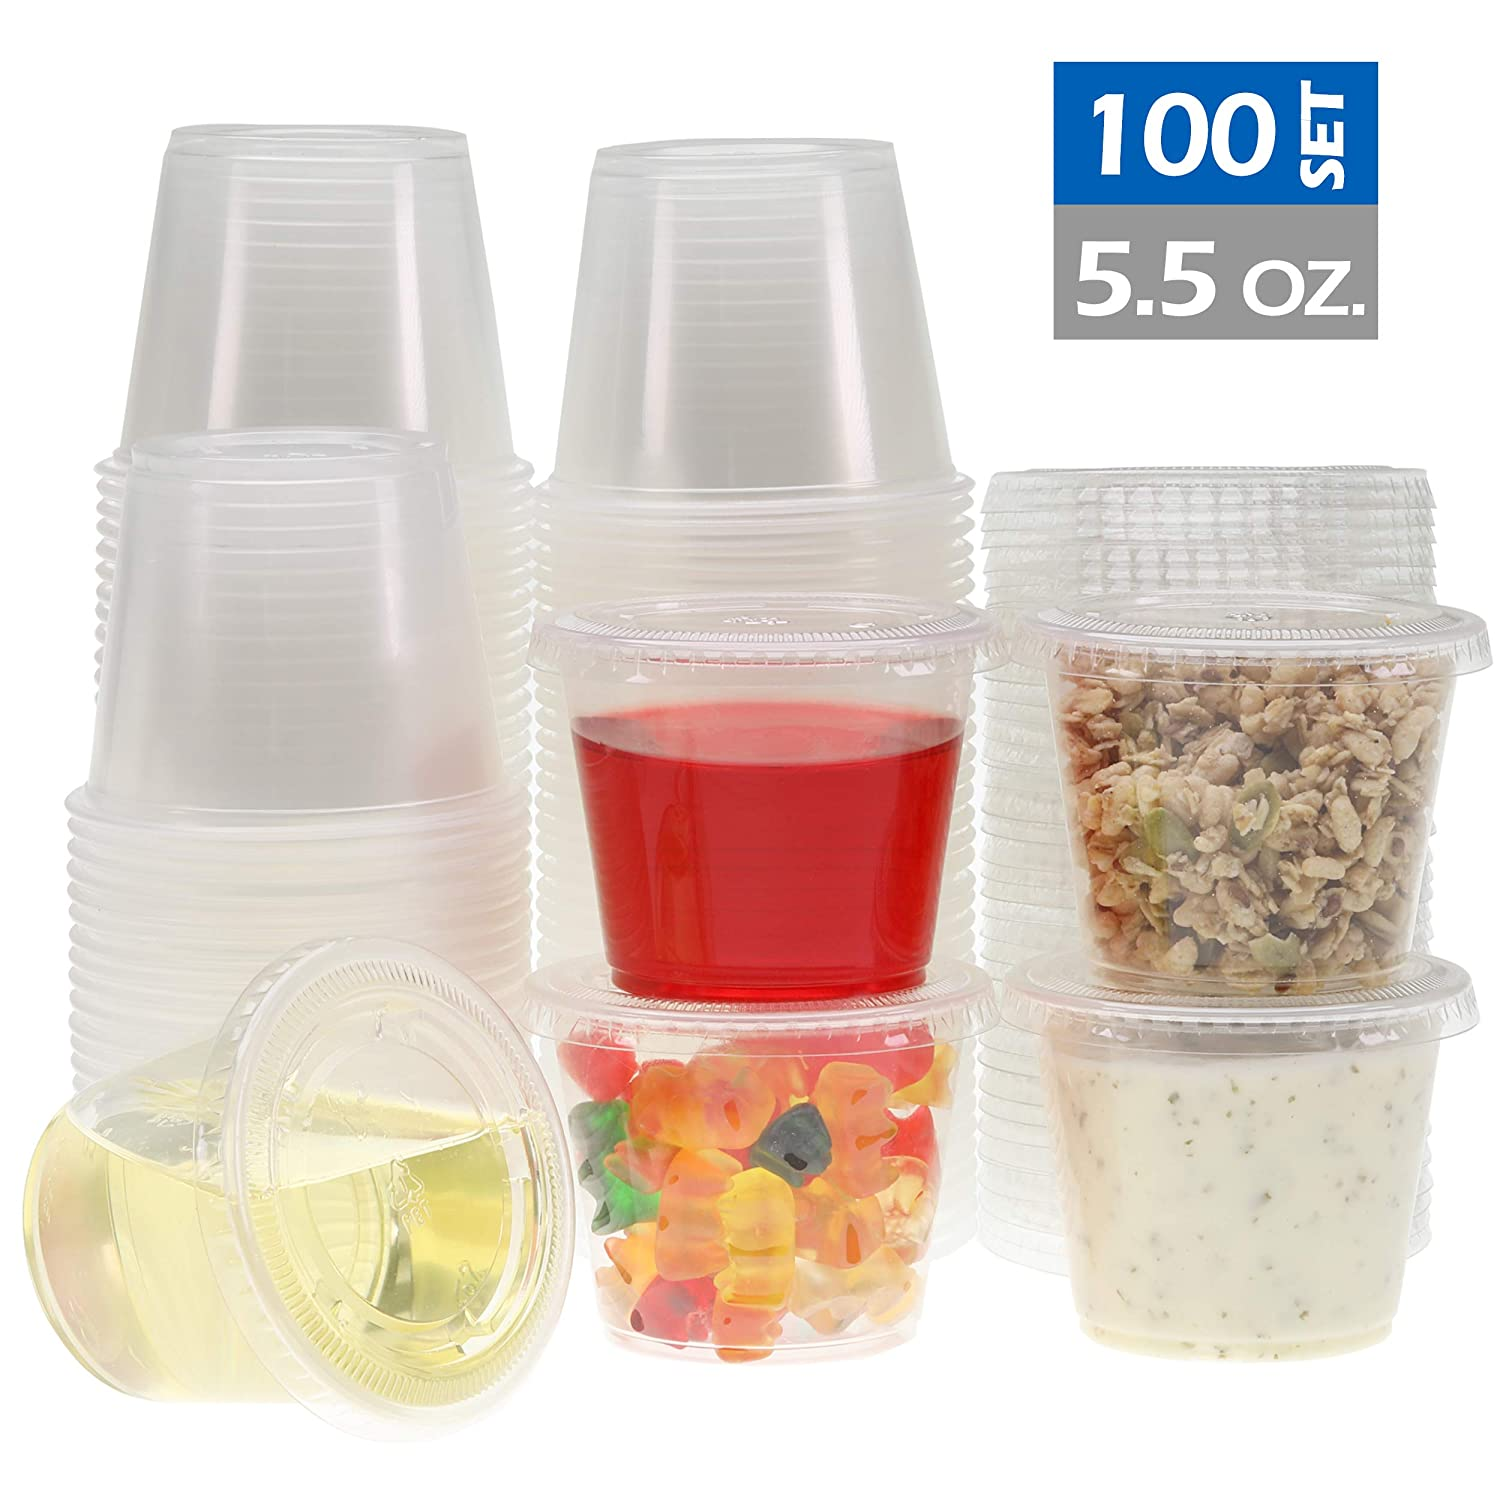 Freshware Plastic Disposable Portion Cups with Lids, 5.5-Ounce, [100 Sets] - Souffle Cups, Sampling Cups, Sauce Cups, Slime Cups, Jello Shot Cups